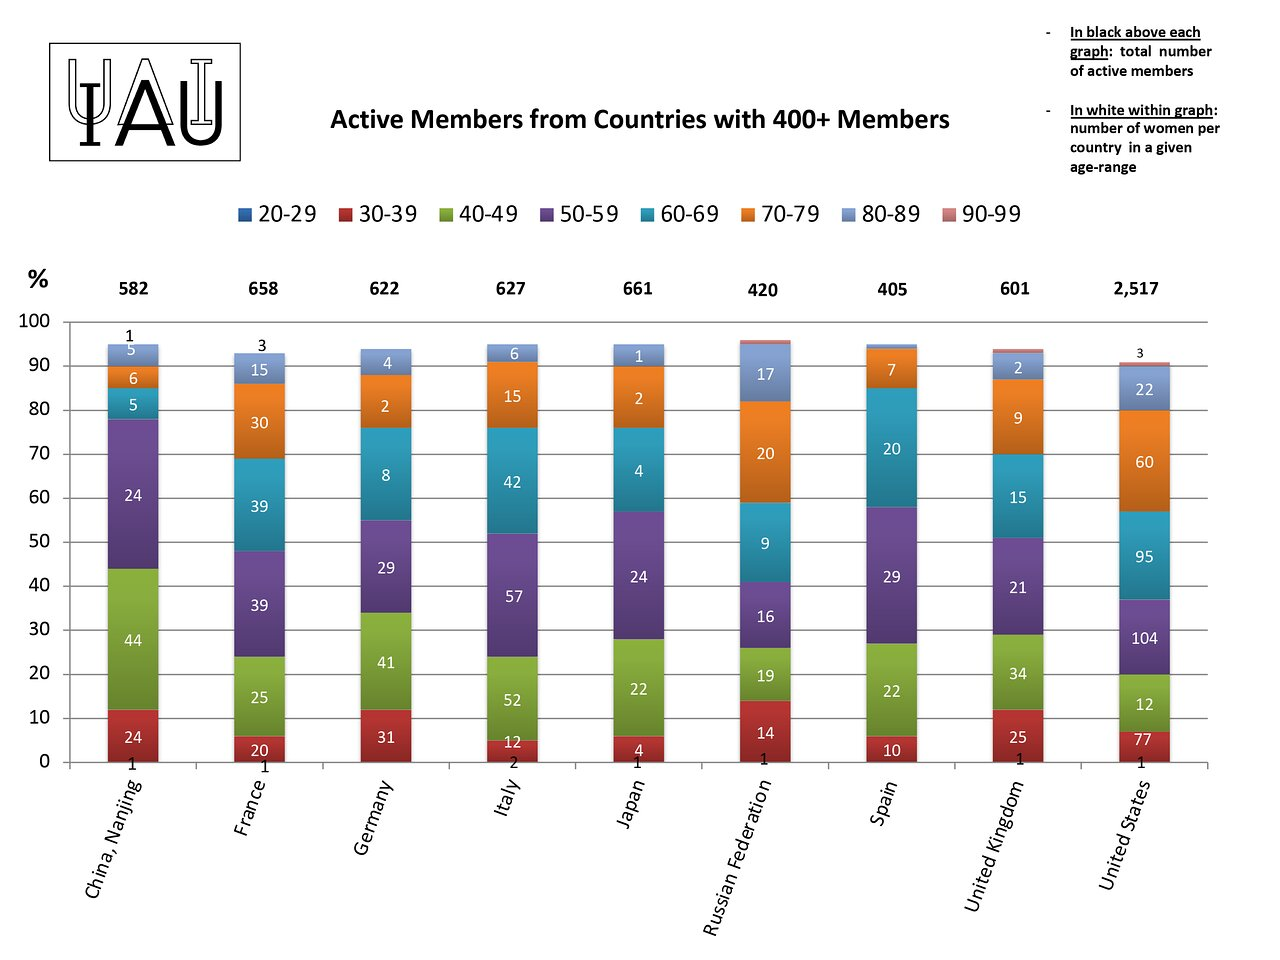 Active members from countries with more than 400 members